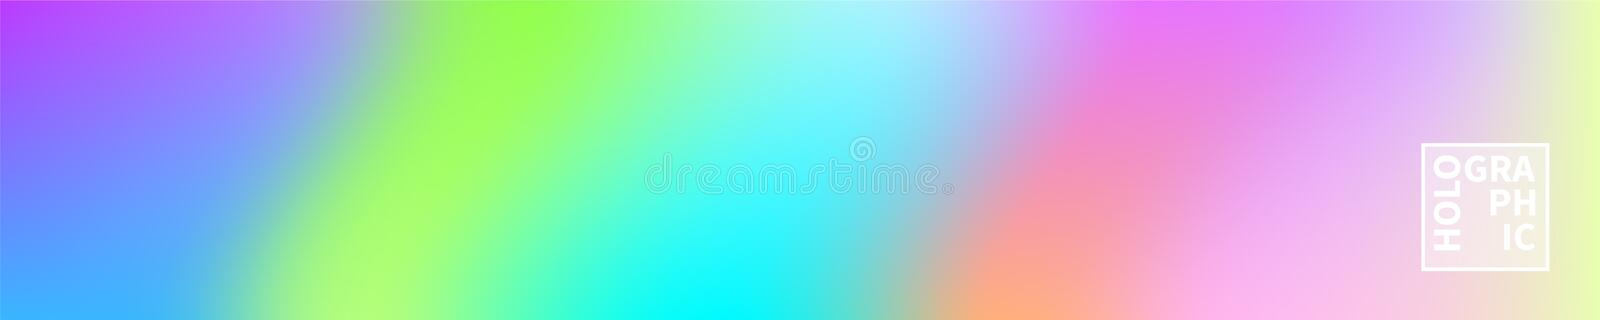 Holographic Vector Background. Iridescent Foil. Glitch Hologram. Pastel neon rainbow. Ultraviolet metallic paper. Template for presentation. Cover to web royalty free illustration